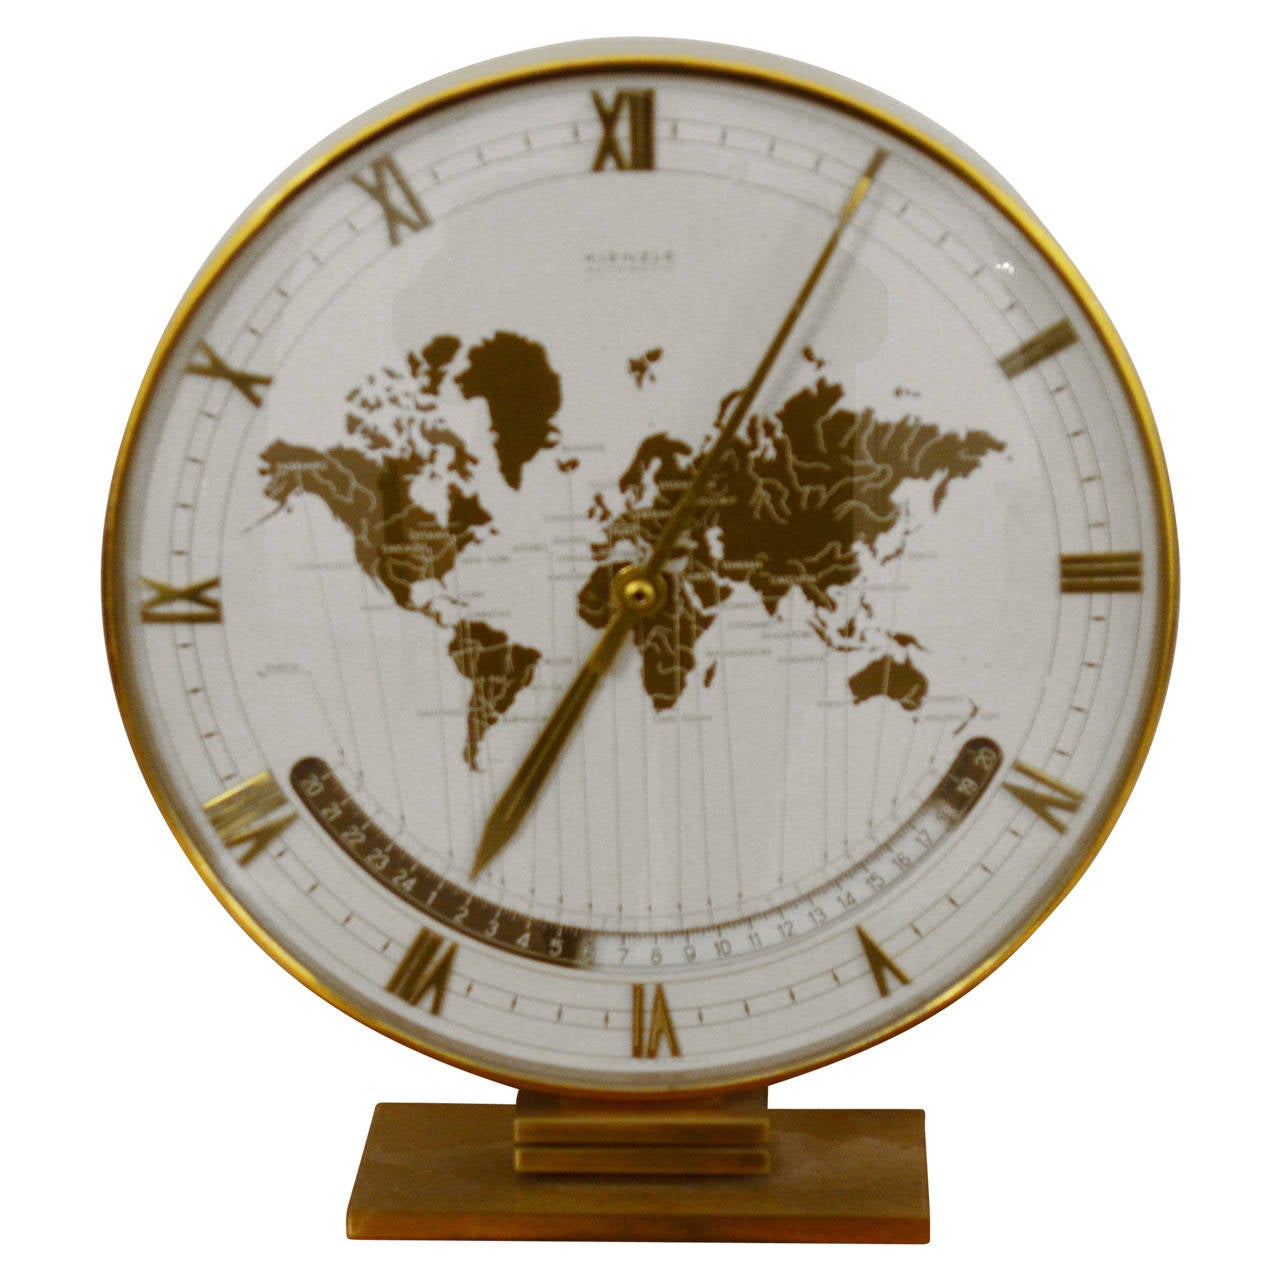 Big kienzle weltzeituhr modernist table world timer zone clock big kienzle weltzeituhr modernist table world timer zone clock 1960s for sale gumiabroncs Choice Image